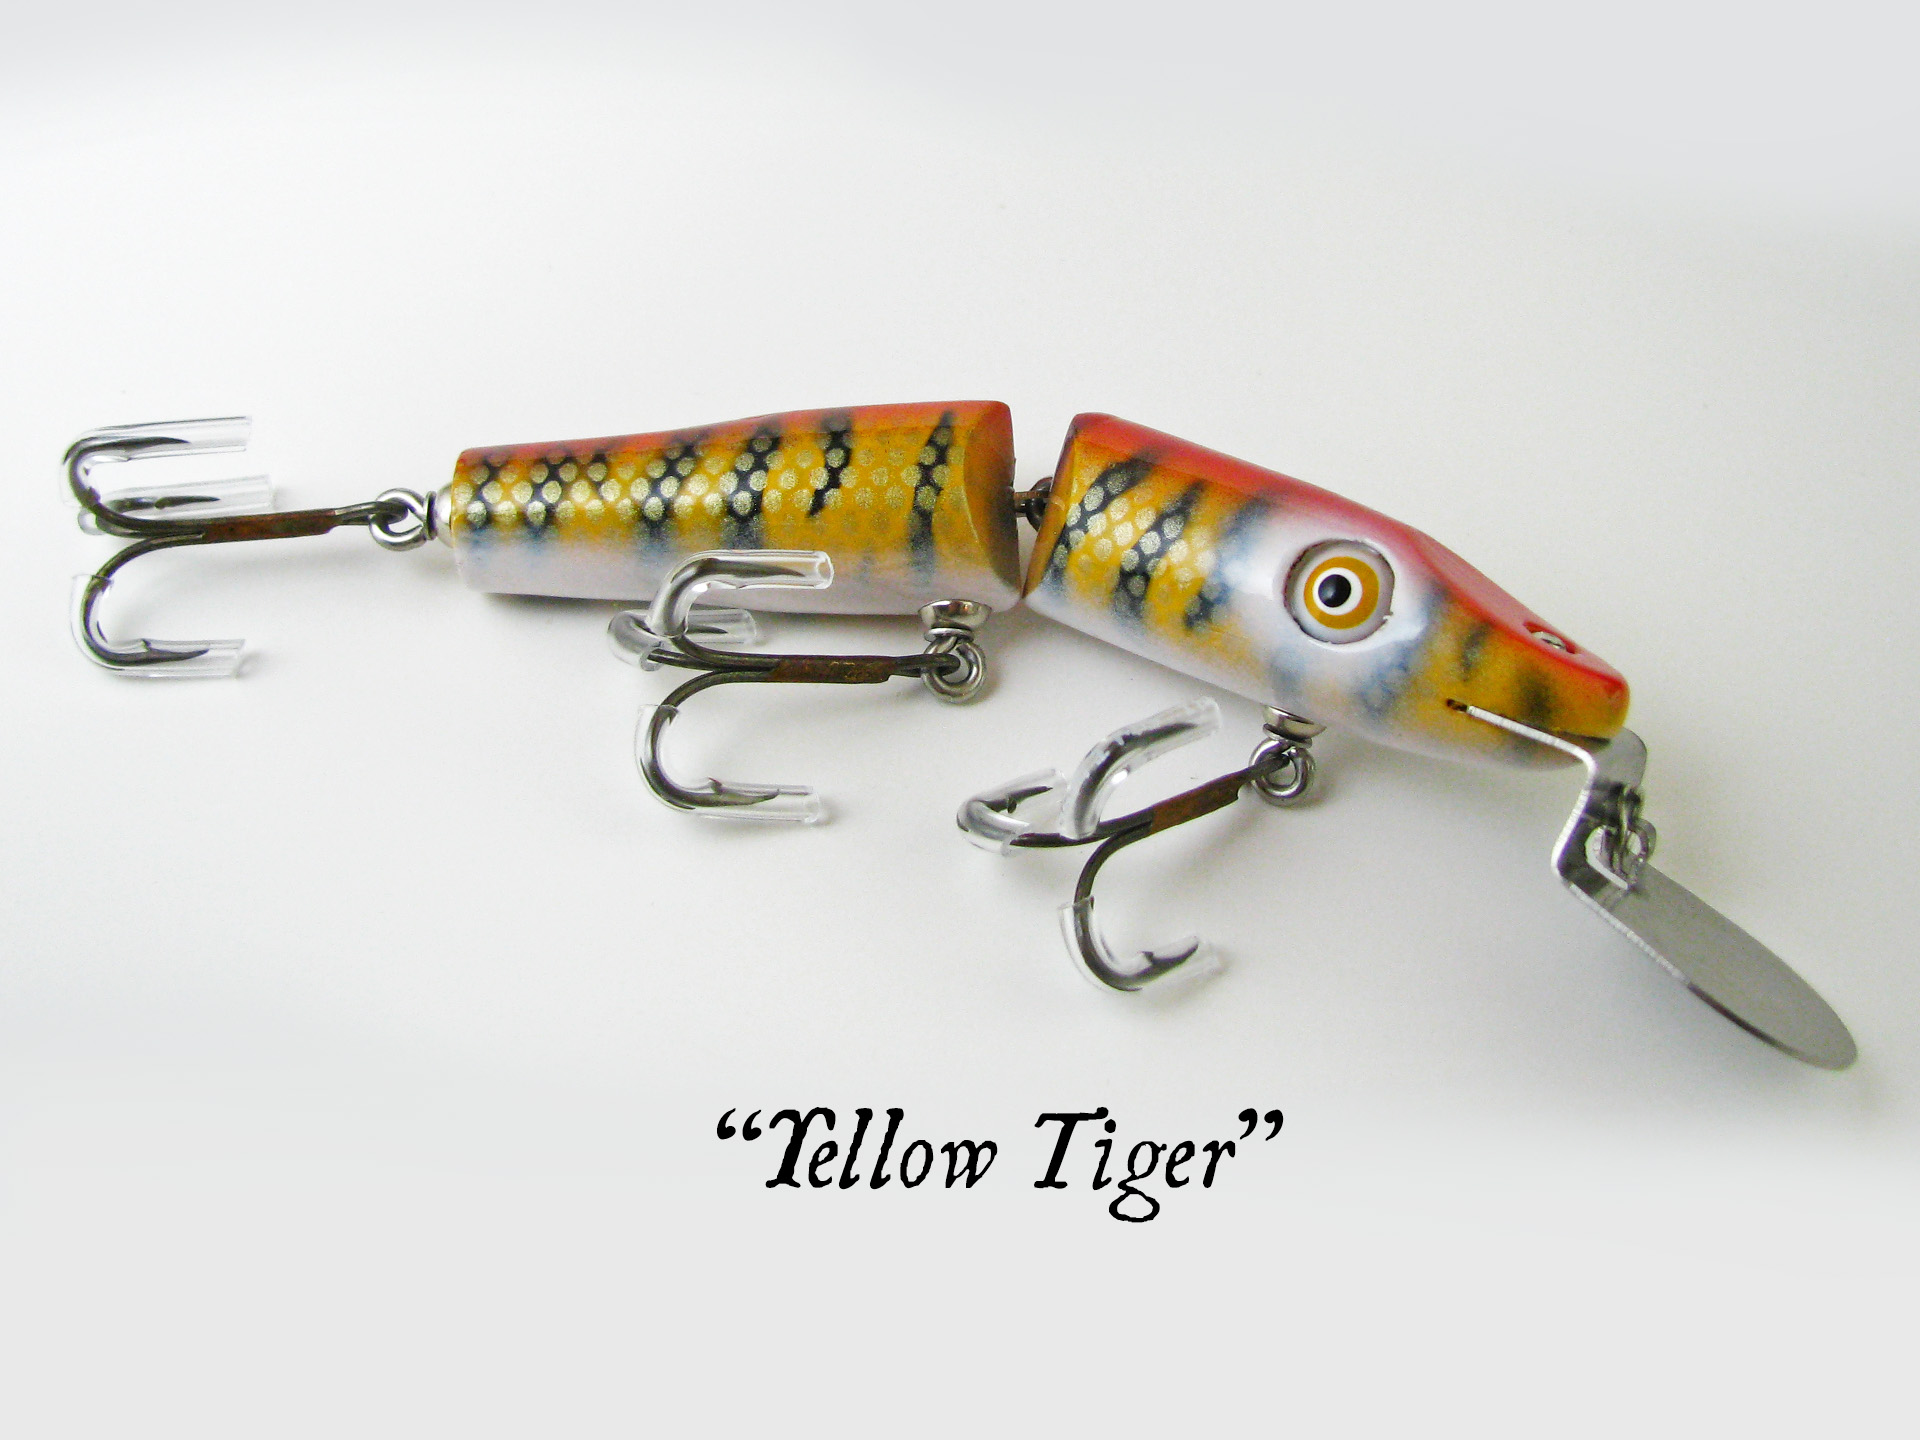 Jointed Piko Plug_Yellow Tiger.jpg